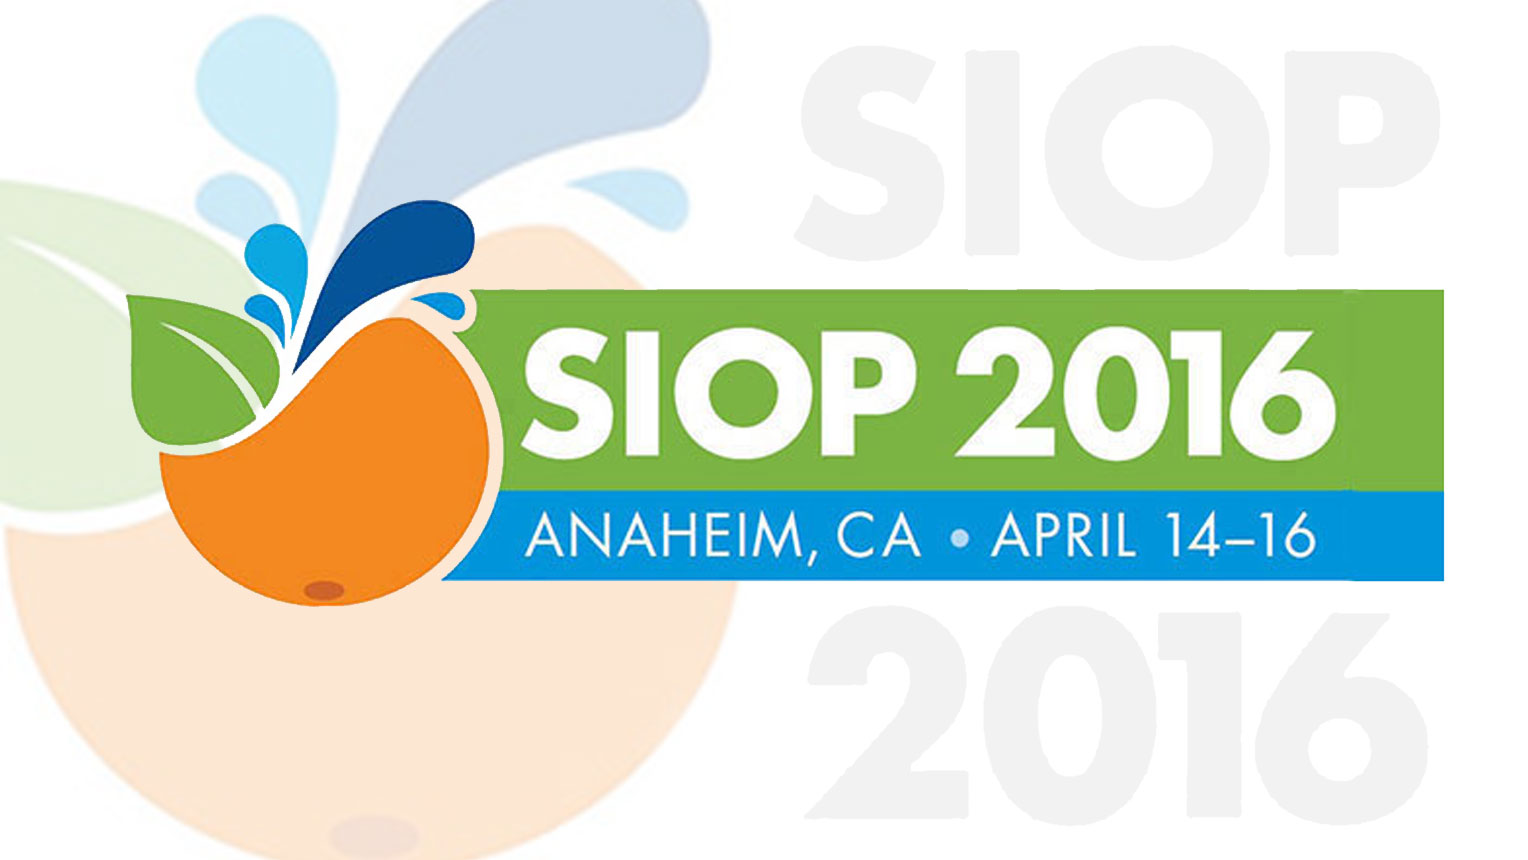 conference logo SIOP 2016